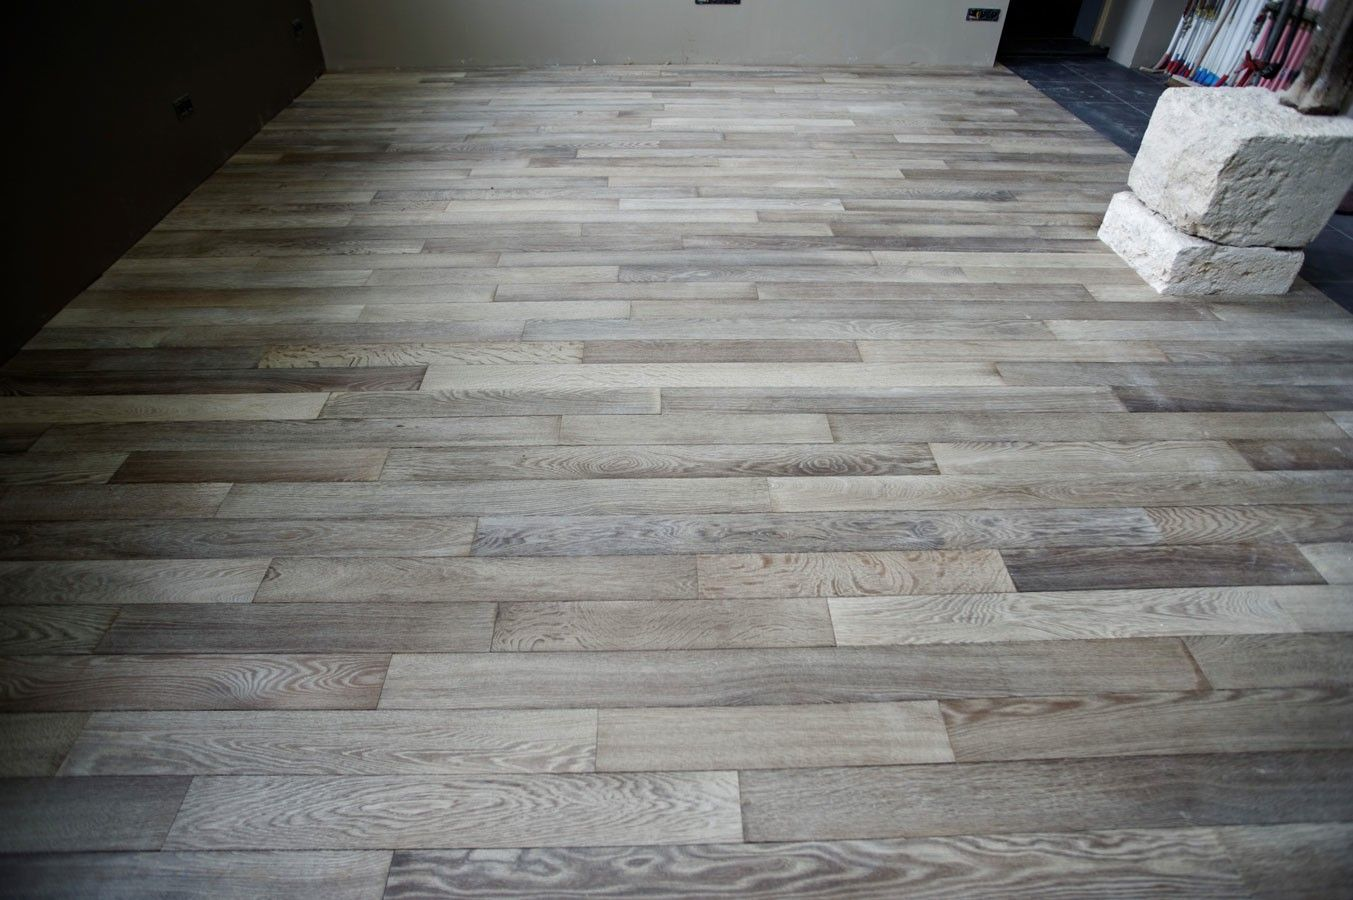 Mahogany Floors Wall Color And Grey Furniture Color Floors Furniture In 2020 With Images Oak Parquet Flooring Mahogany Flooring Grey Wood Floors